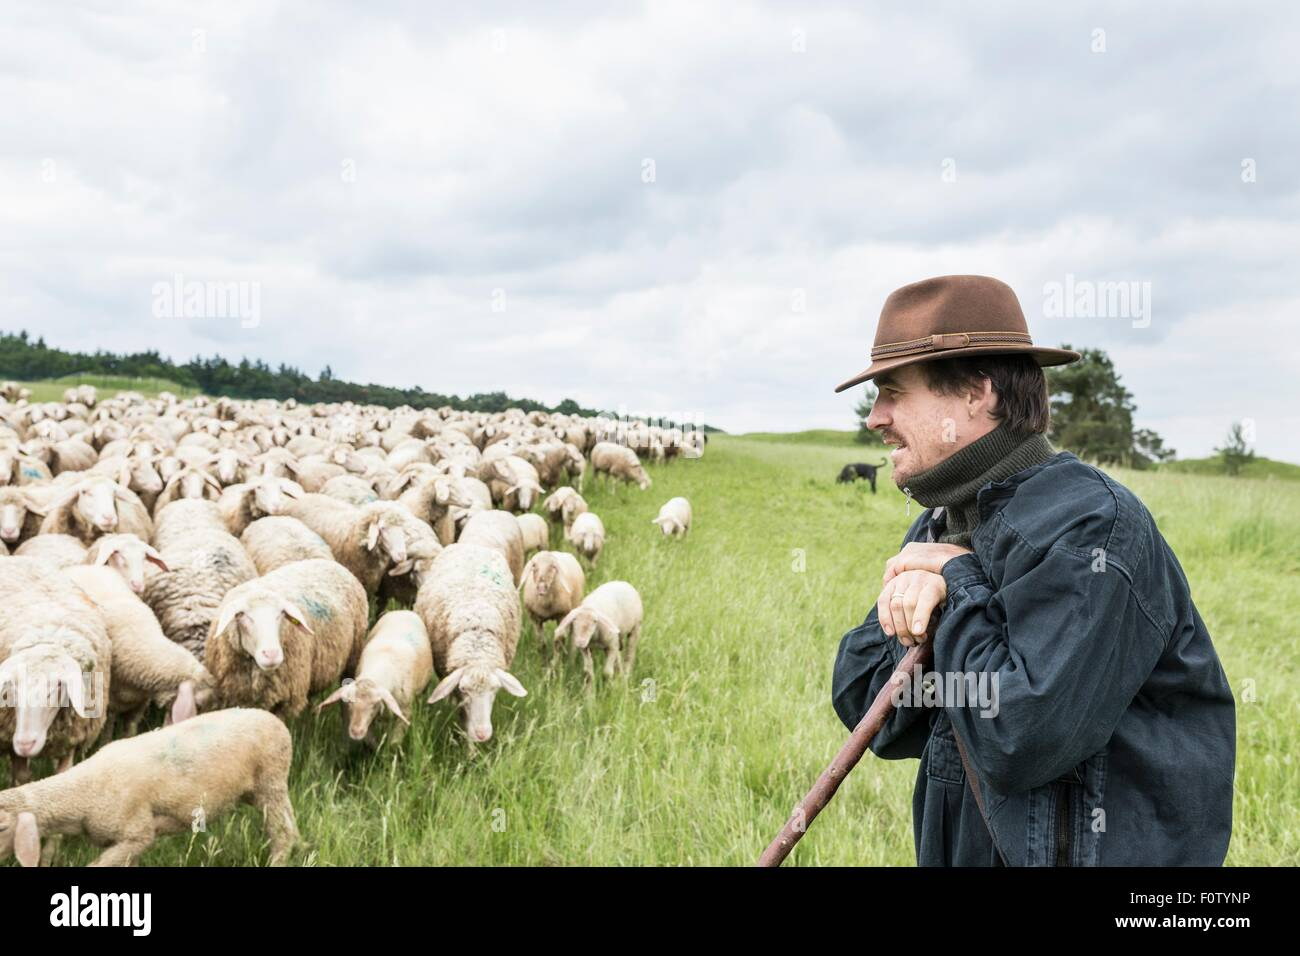 Farmer in field tending to sheep - Stock Image